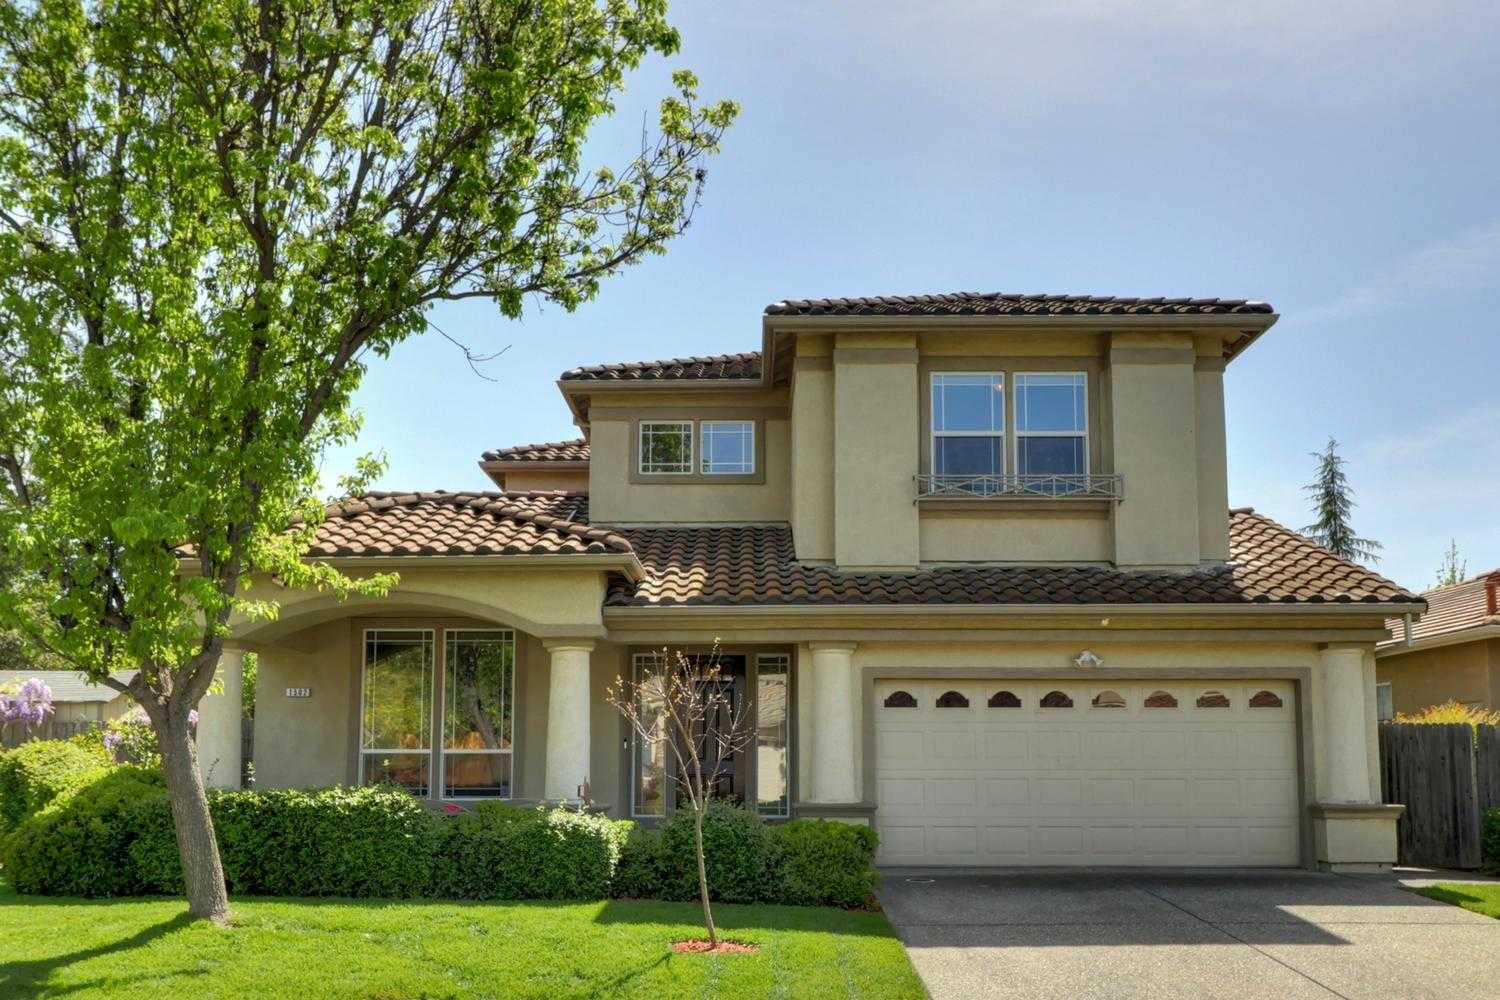 $989,000 - 5Br/3Ba -  for Sale in Evergreen, Davis